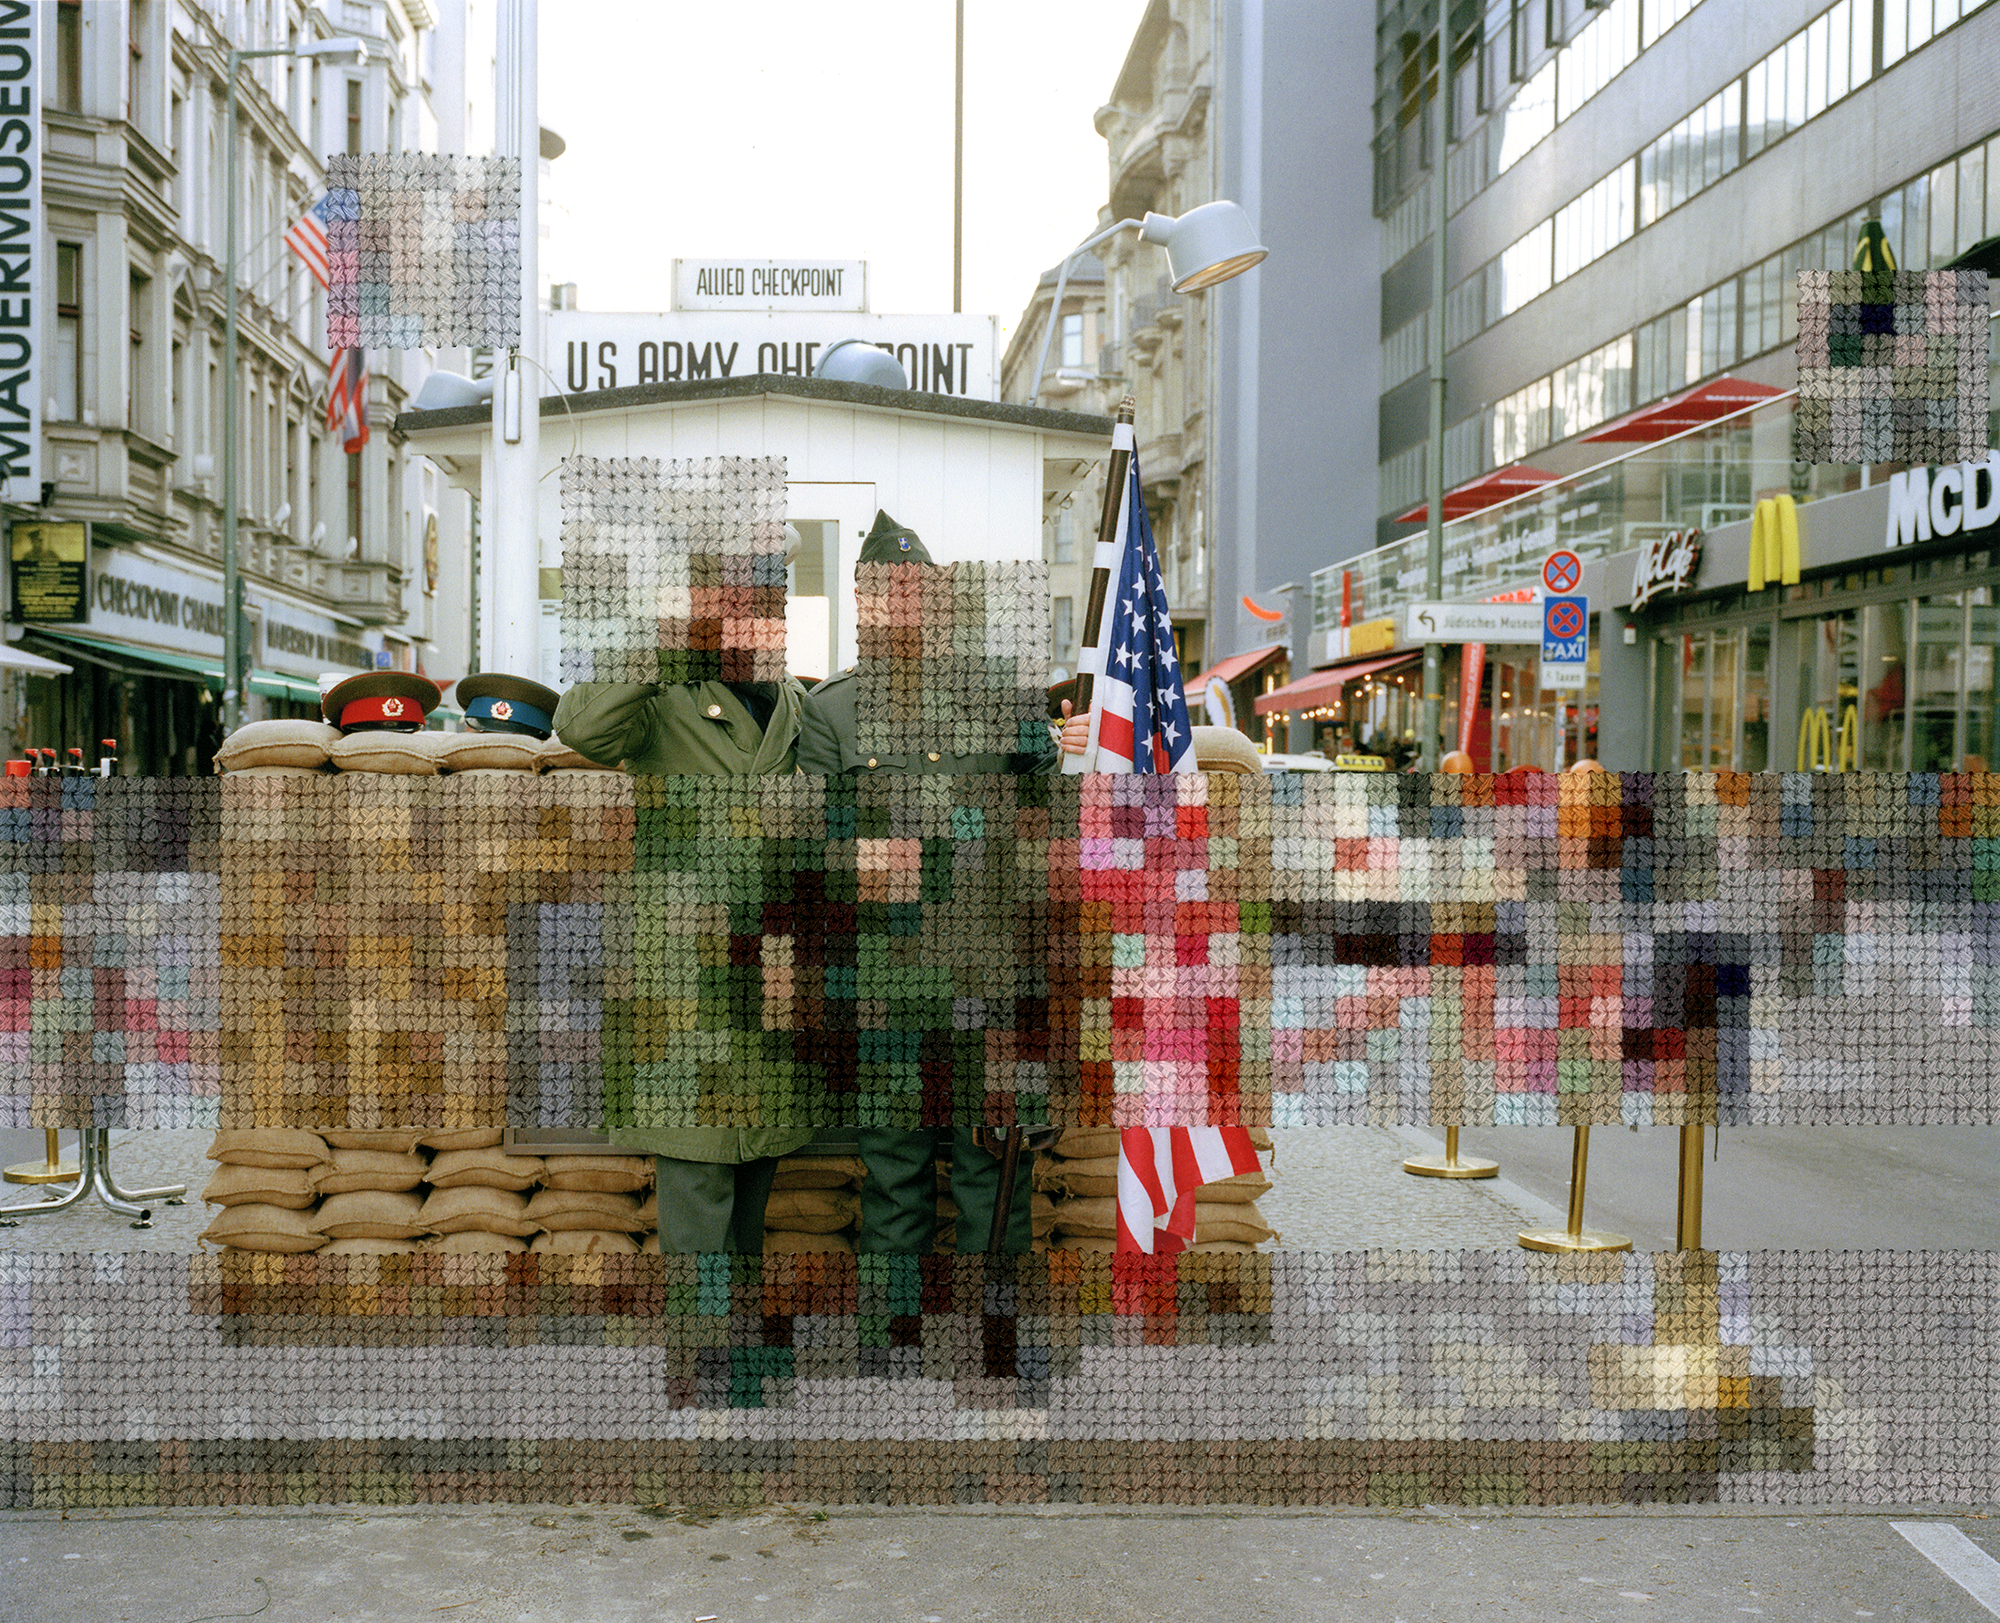 Hand-Stitched Photographs by Diane Meyer Mimic the Opacity and Divisiveness of the Berlin Wall